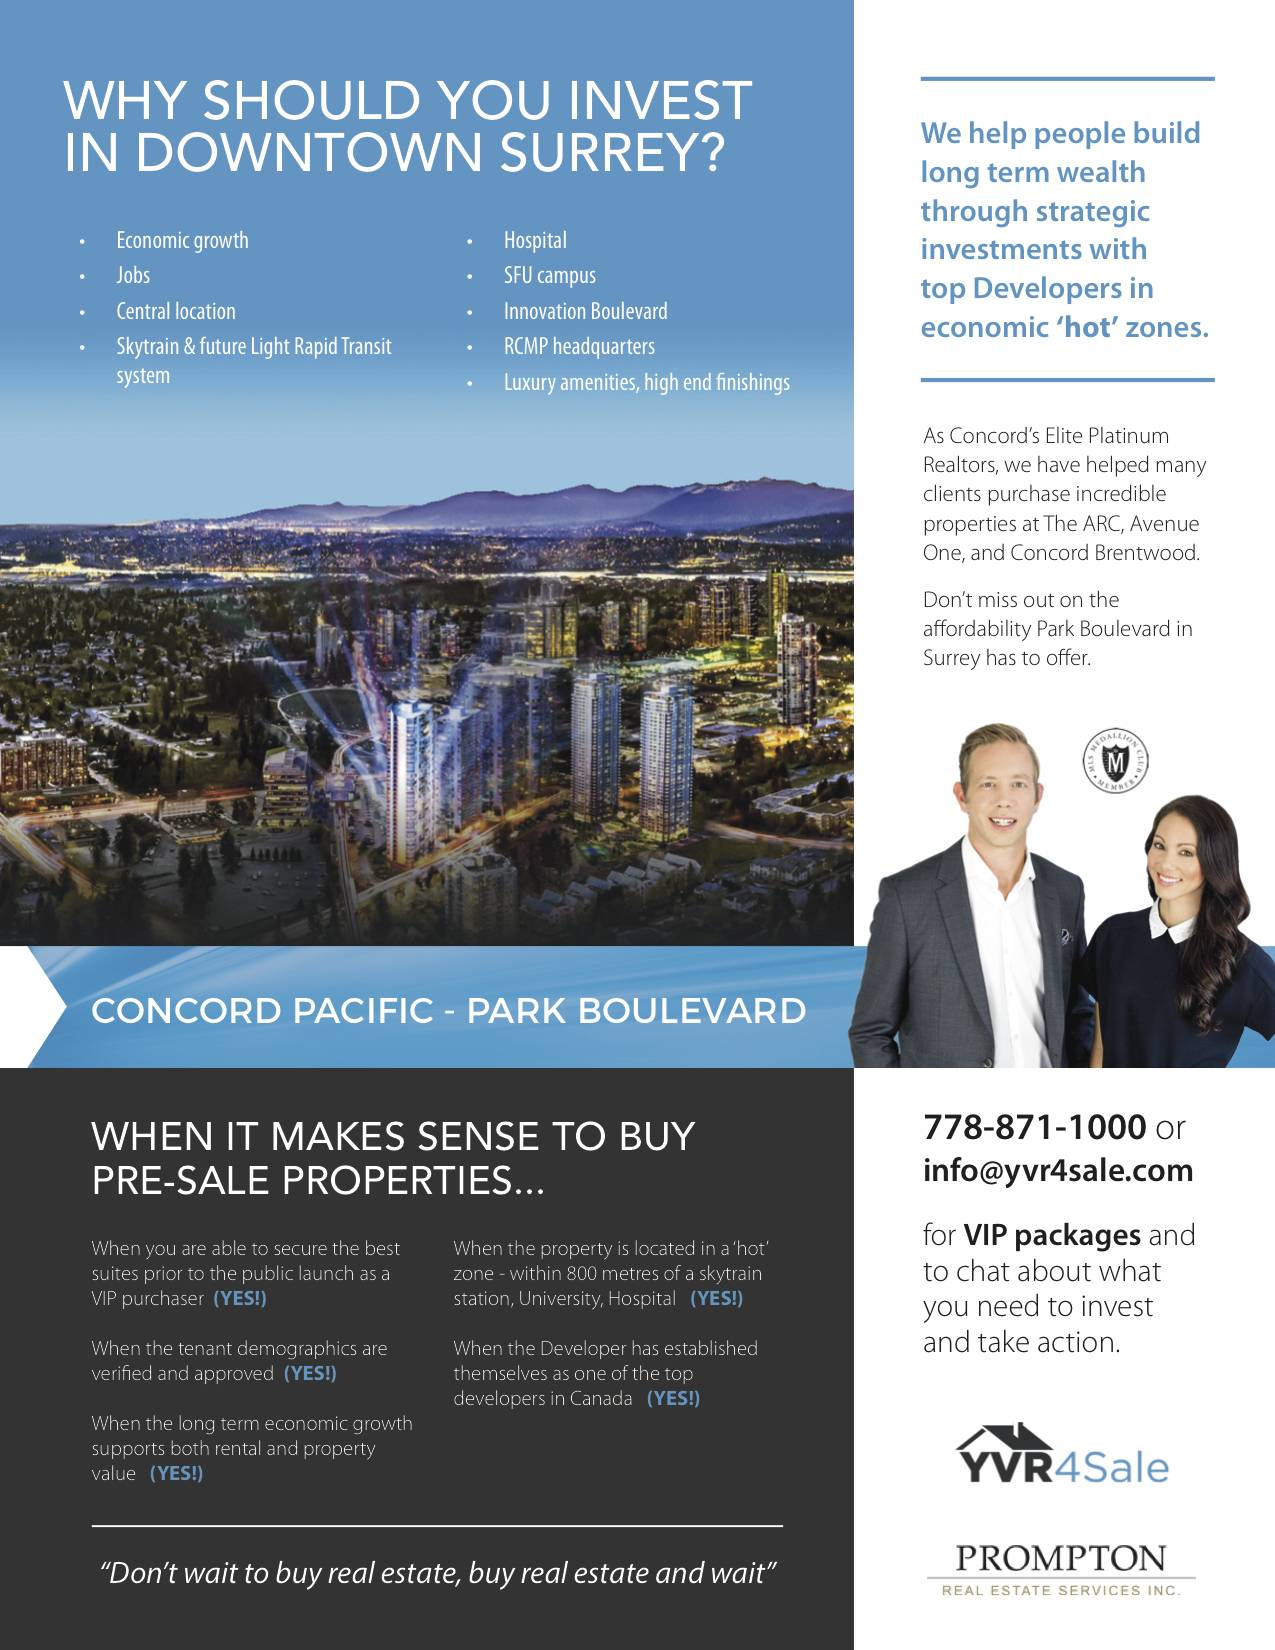 Concord Pacific, presale, new home development, surrey, downtown surrey, yvr4sale, amy leong, brian higgins